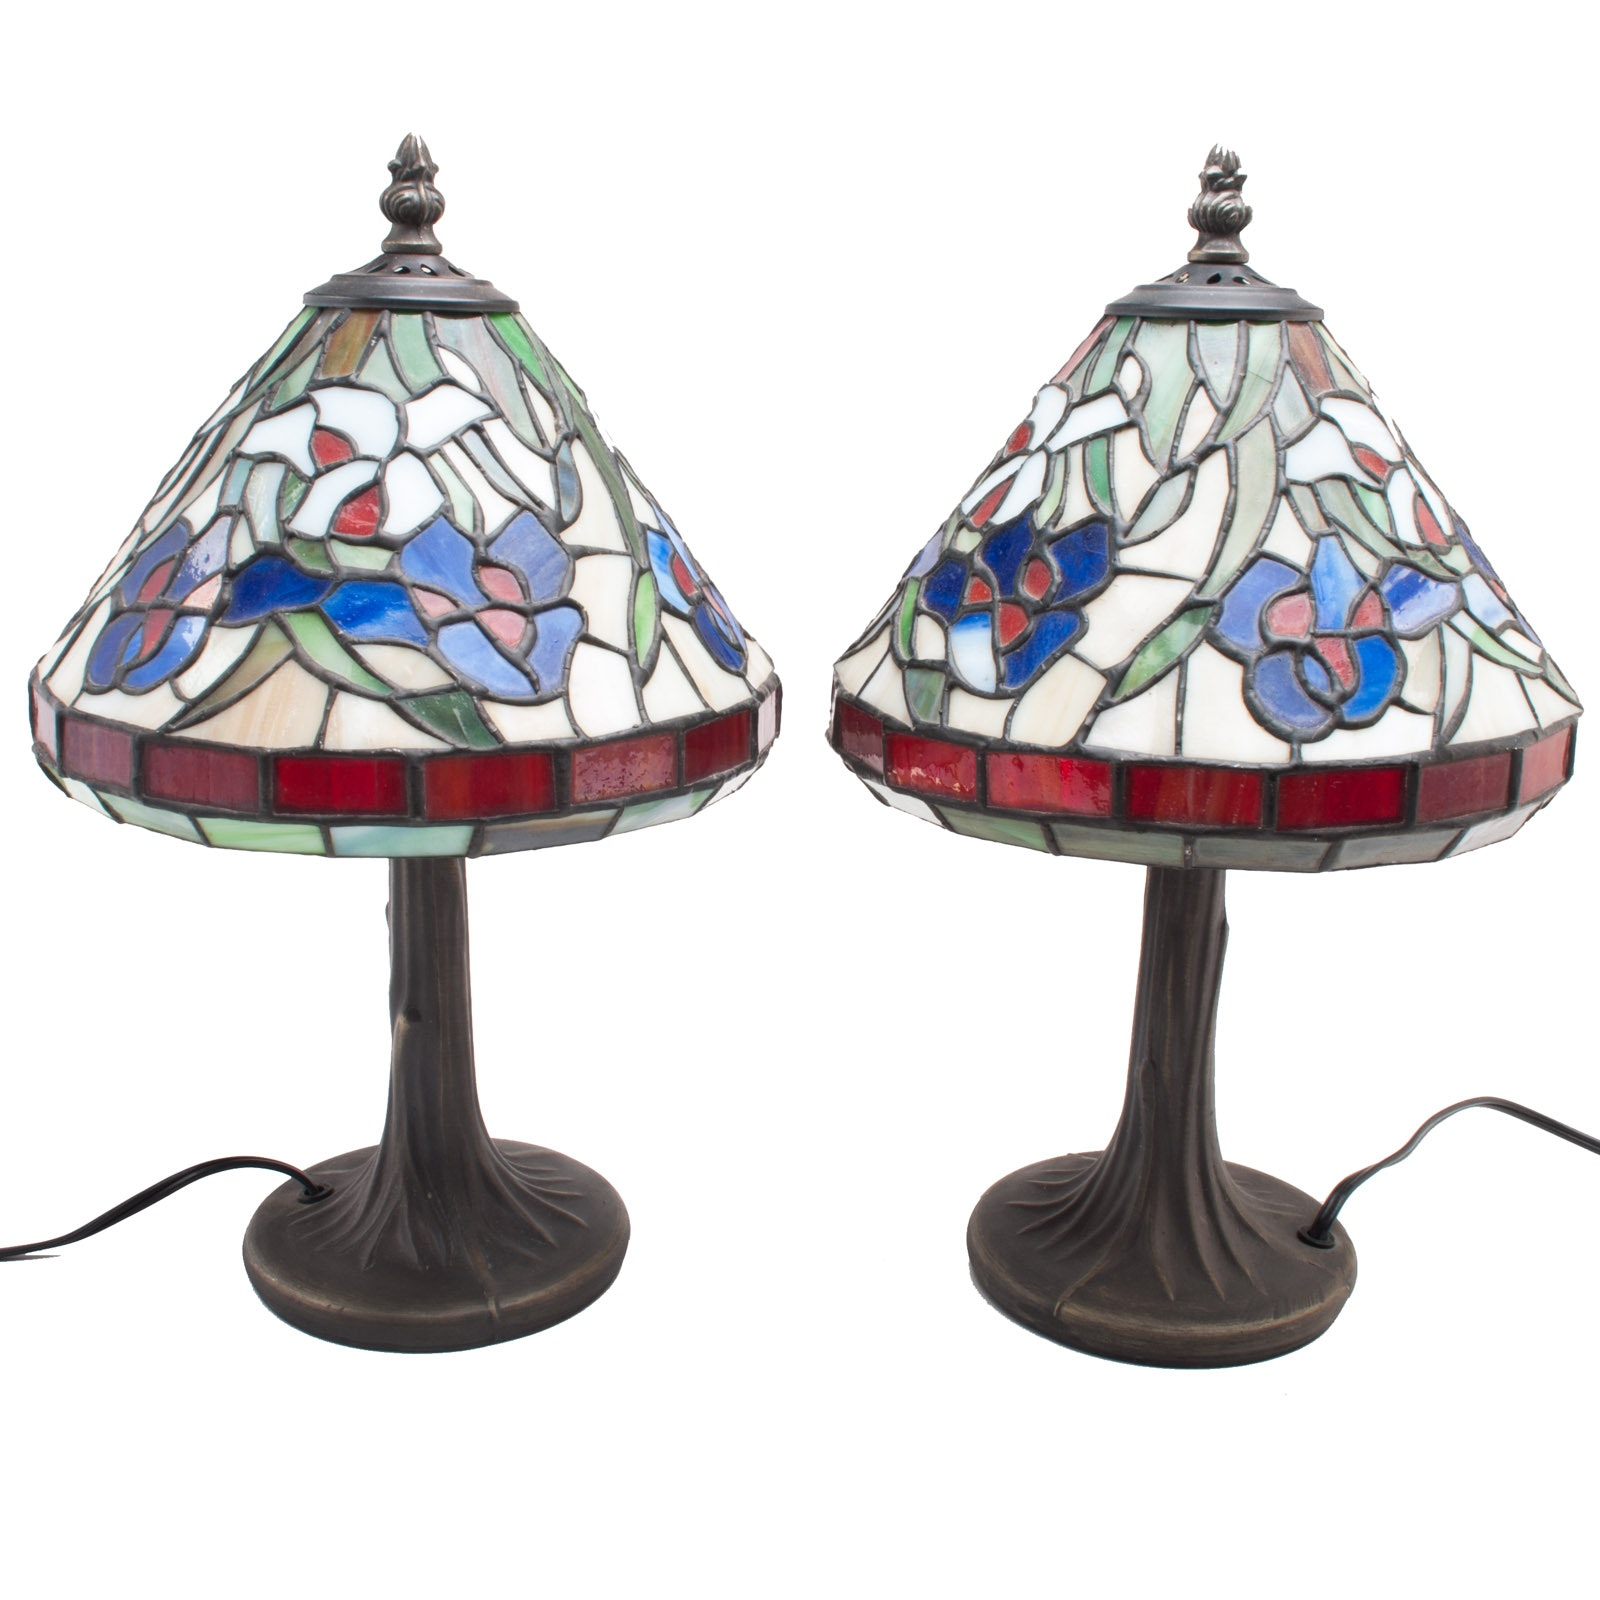 Pair of Contemporary Table or Desk Lamps